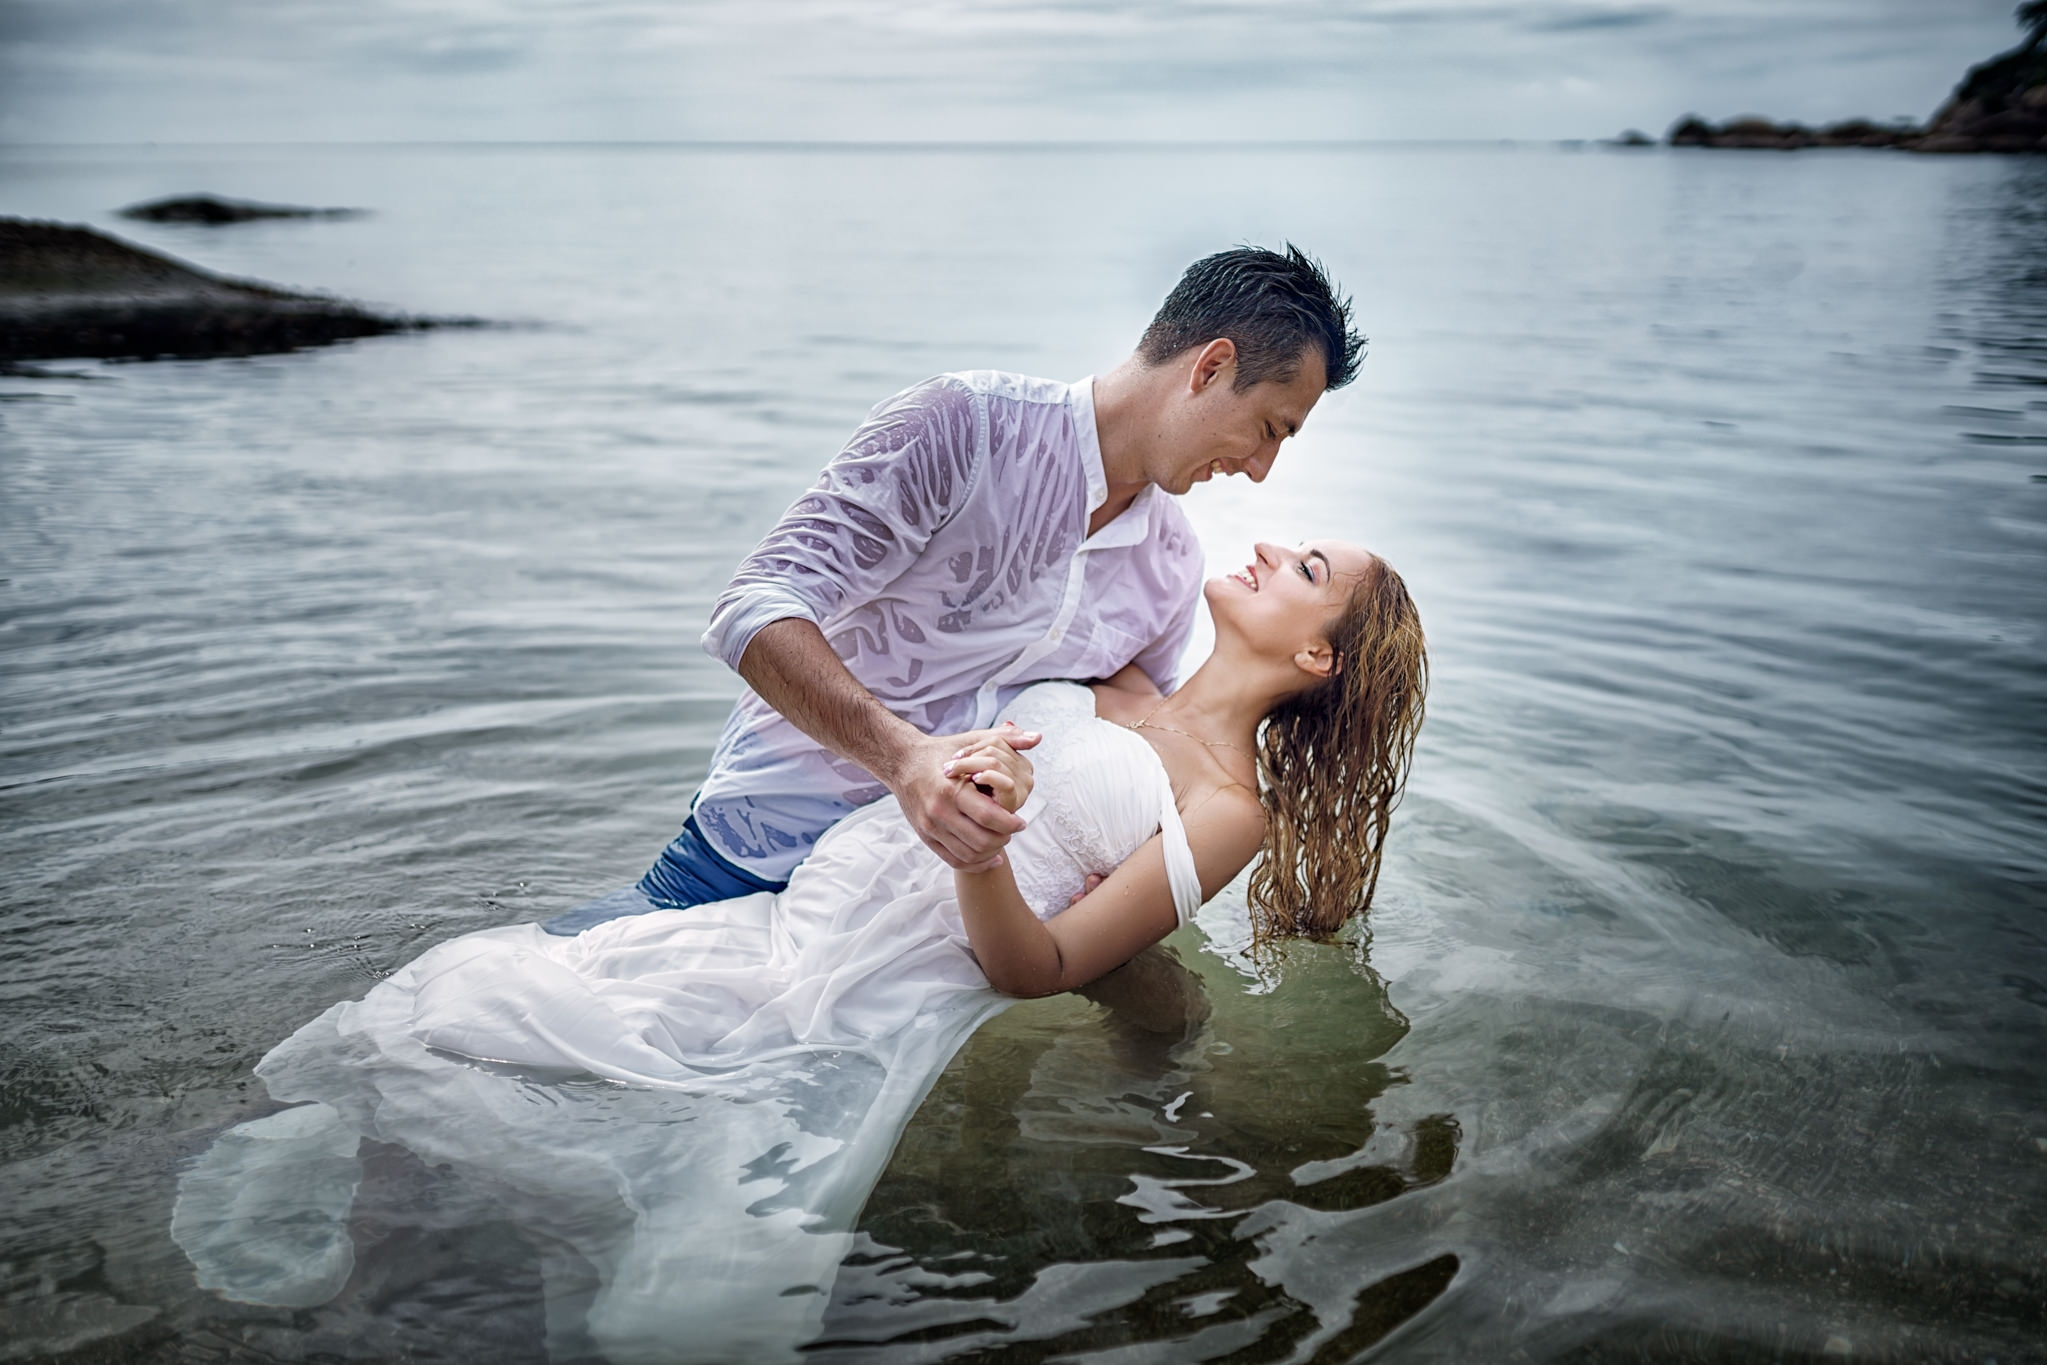 Wedding photographer couple photo on the beach love